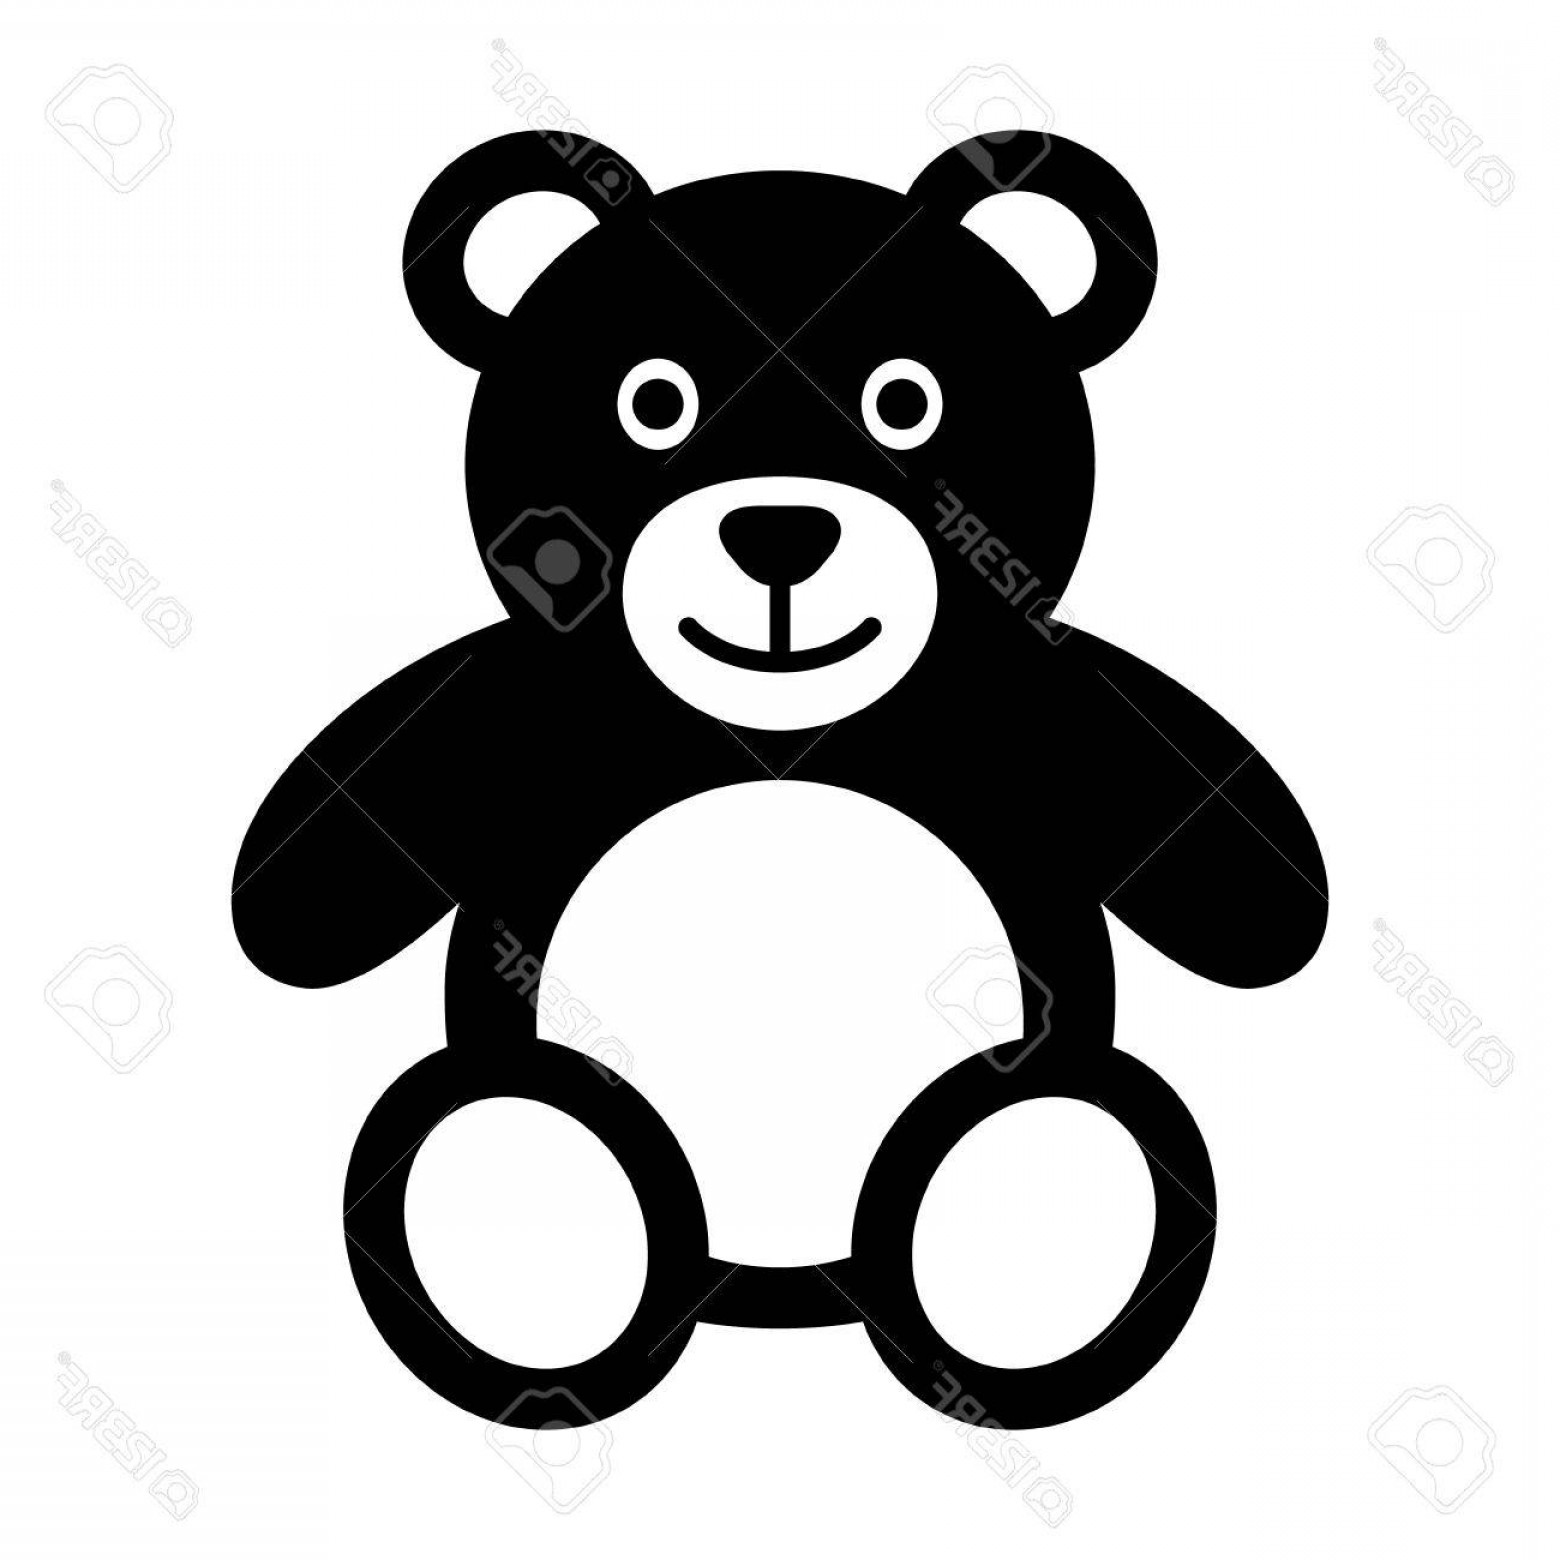 1560x1560 Photostock Vector Teddy Bear Plush Toy Flat Icon For Apps And